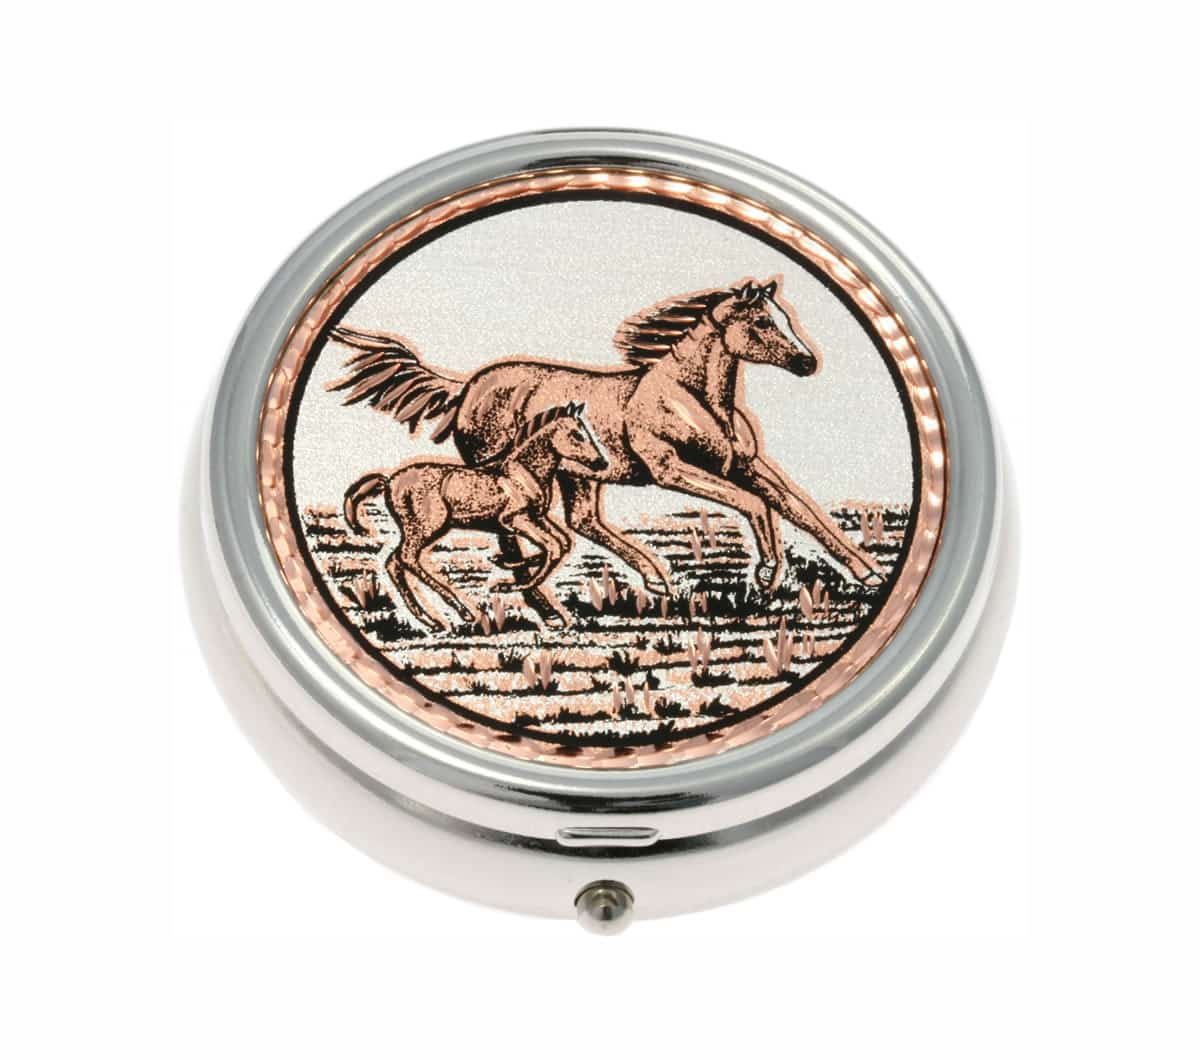 Handmade Copper Foal and Horse Artwork Decorated Silver Color Pill Boxes